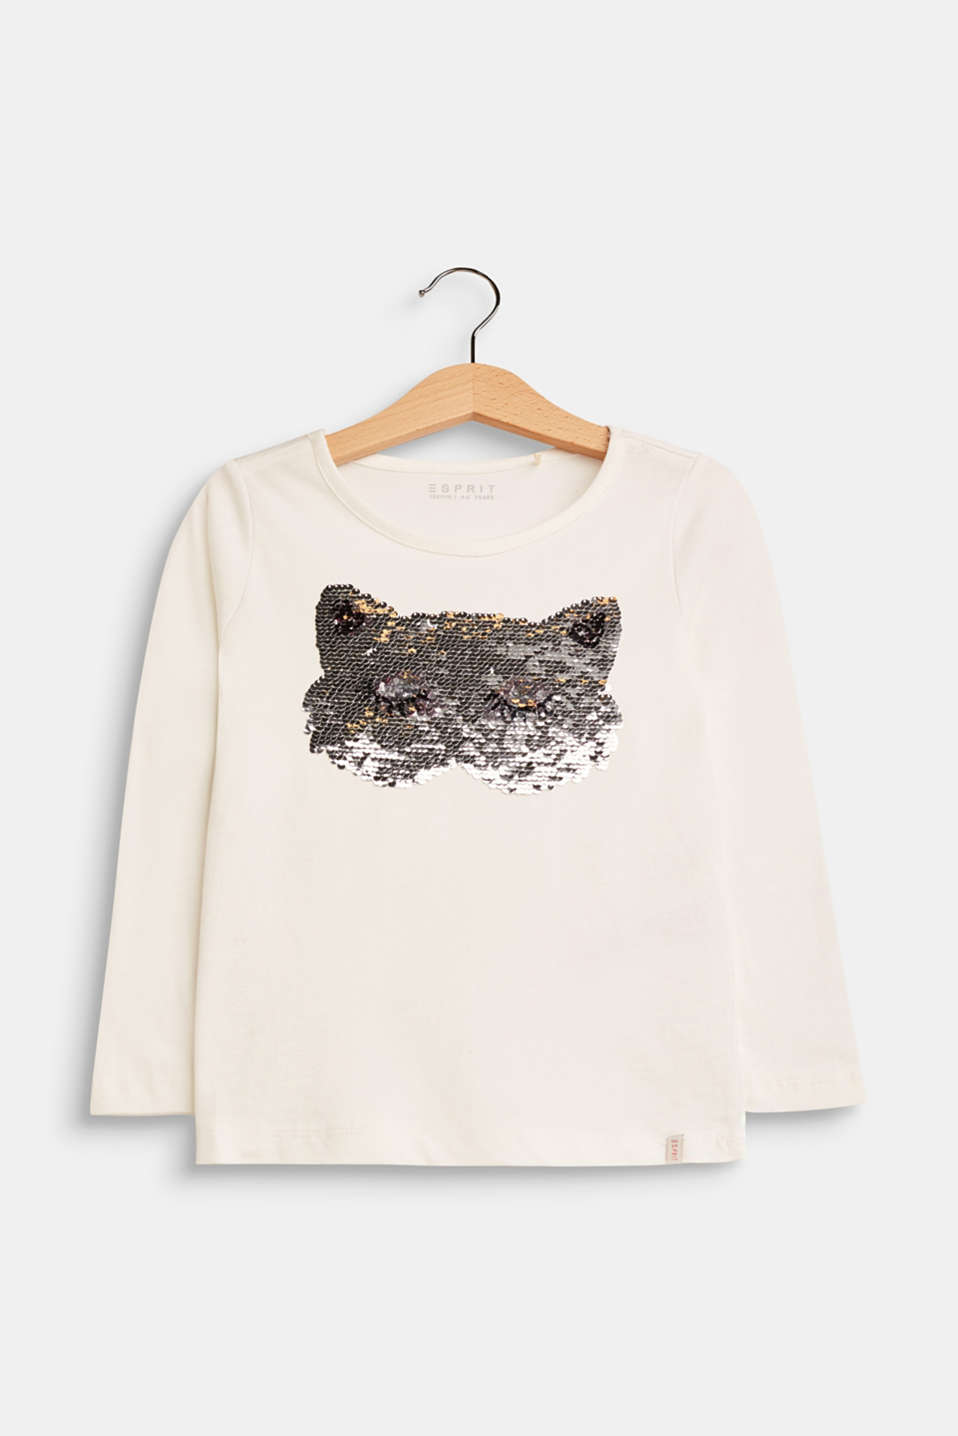 Esprit - Long sleeve top with reversible sequins, 100% cotton